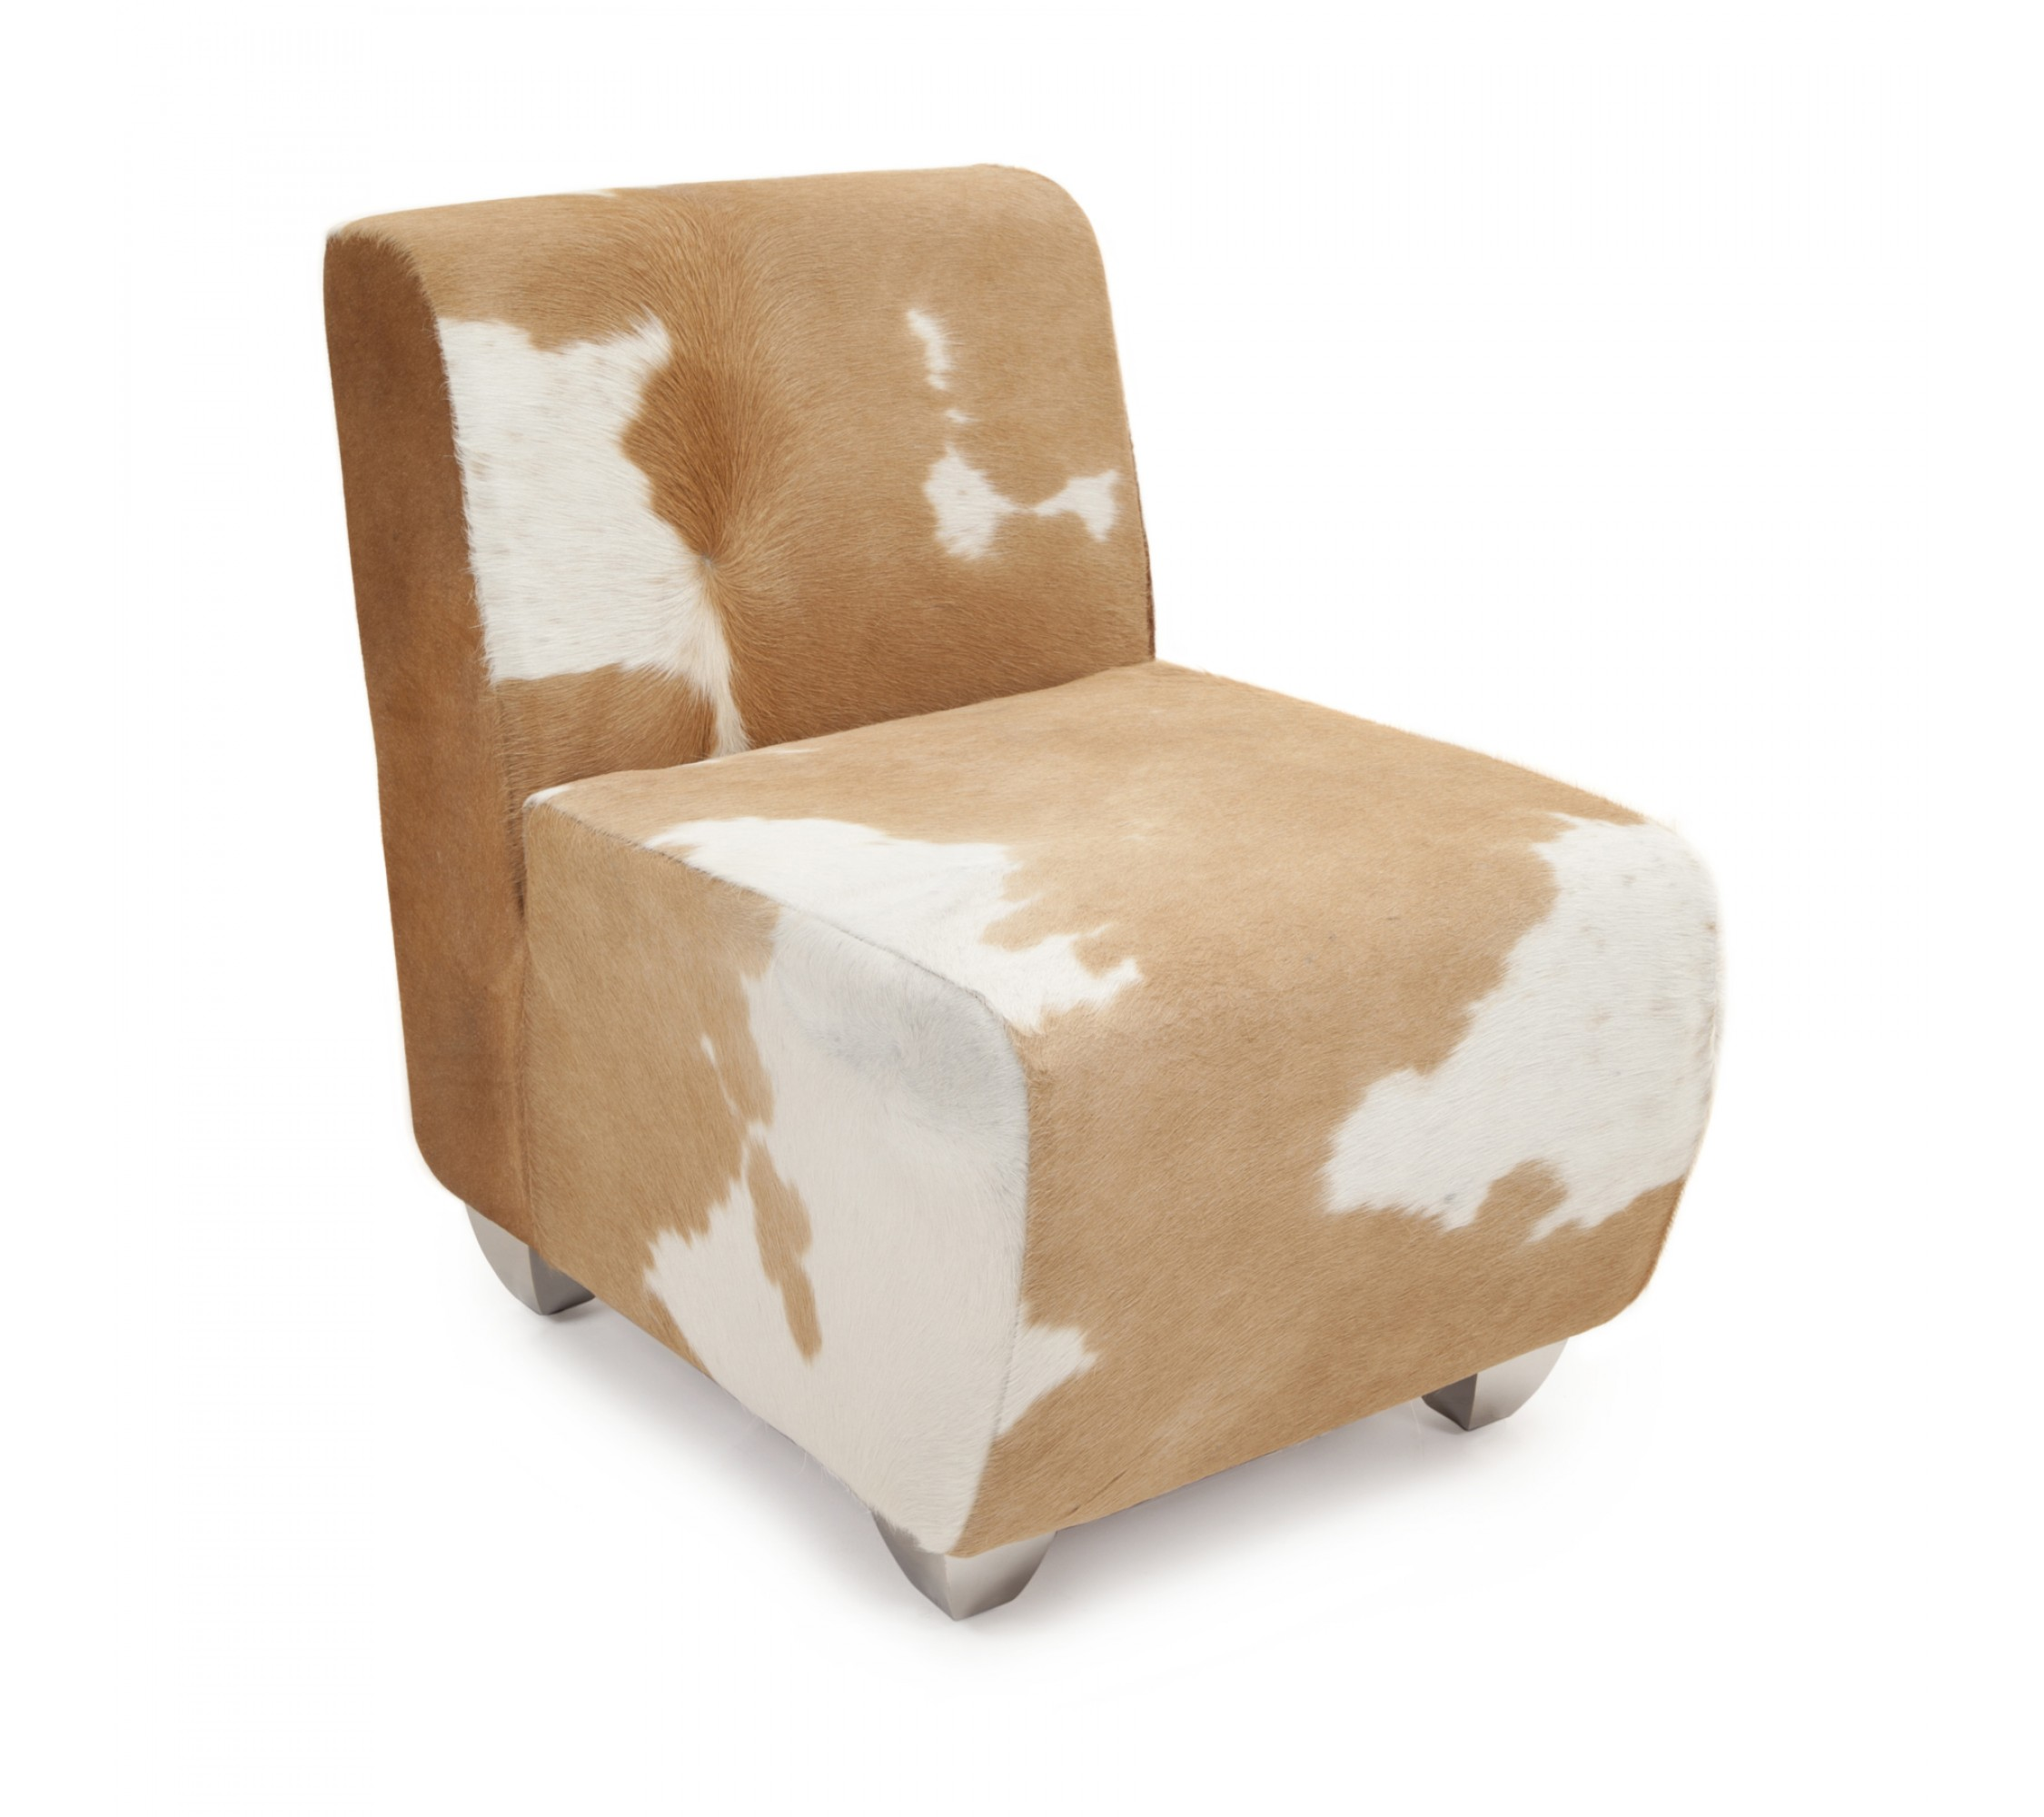 Kuhfell Sessel - Jason Cow